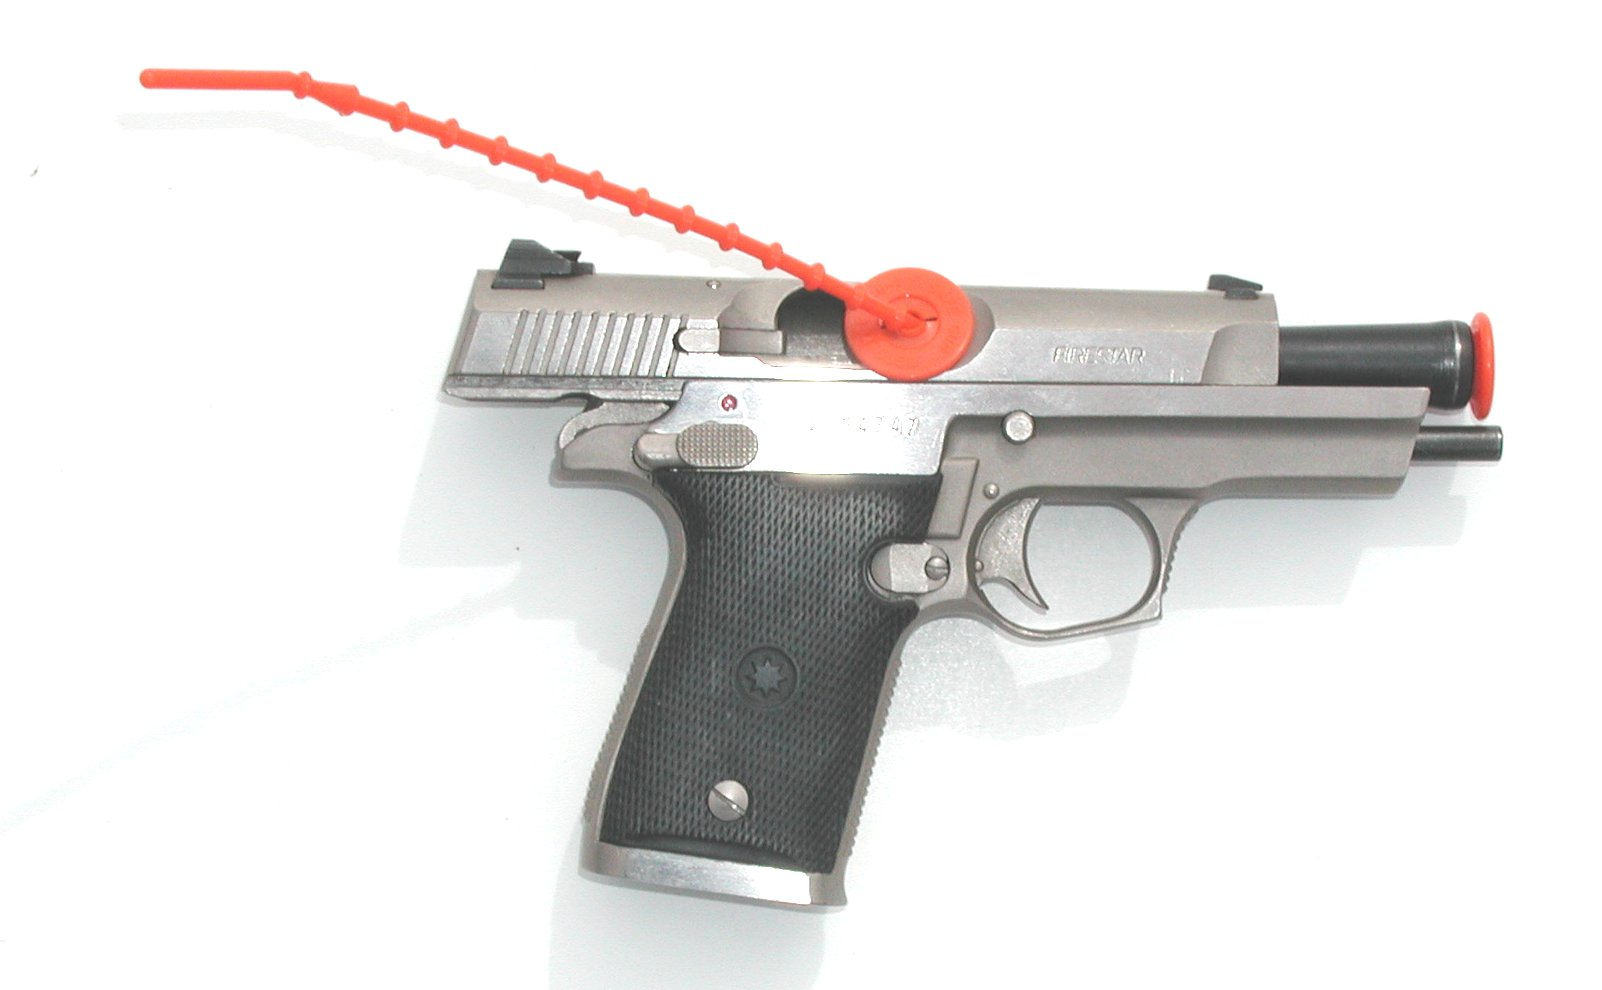 small semi auto with safegun indicator.jpg